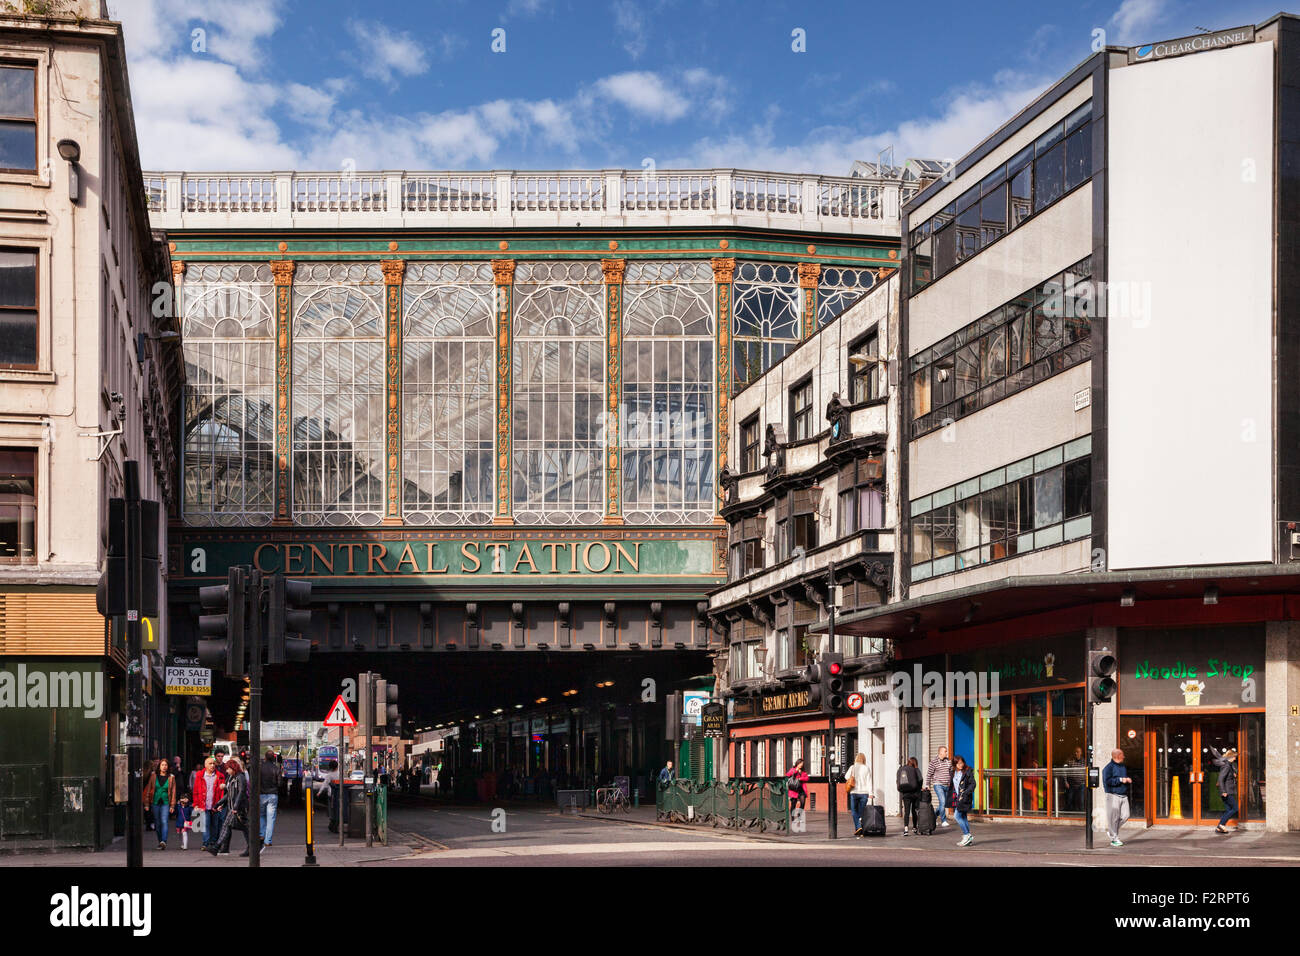 Glasgow Central Station Bridge, which carries the platforms of Glasgow Central Station across Argyle Street, known - Stock Image